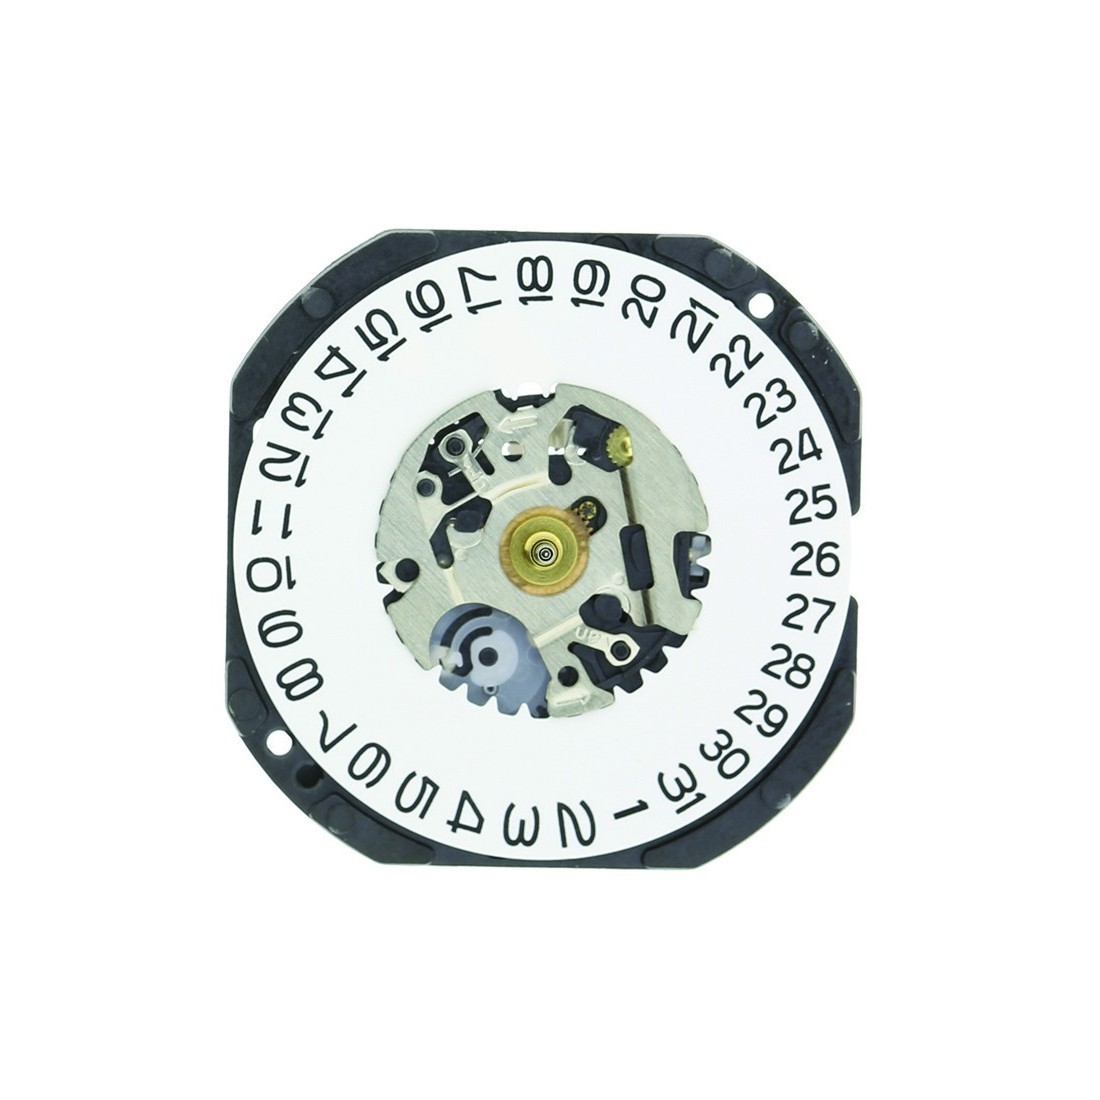 7N39-10 Seiko Quartz Watch Movement